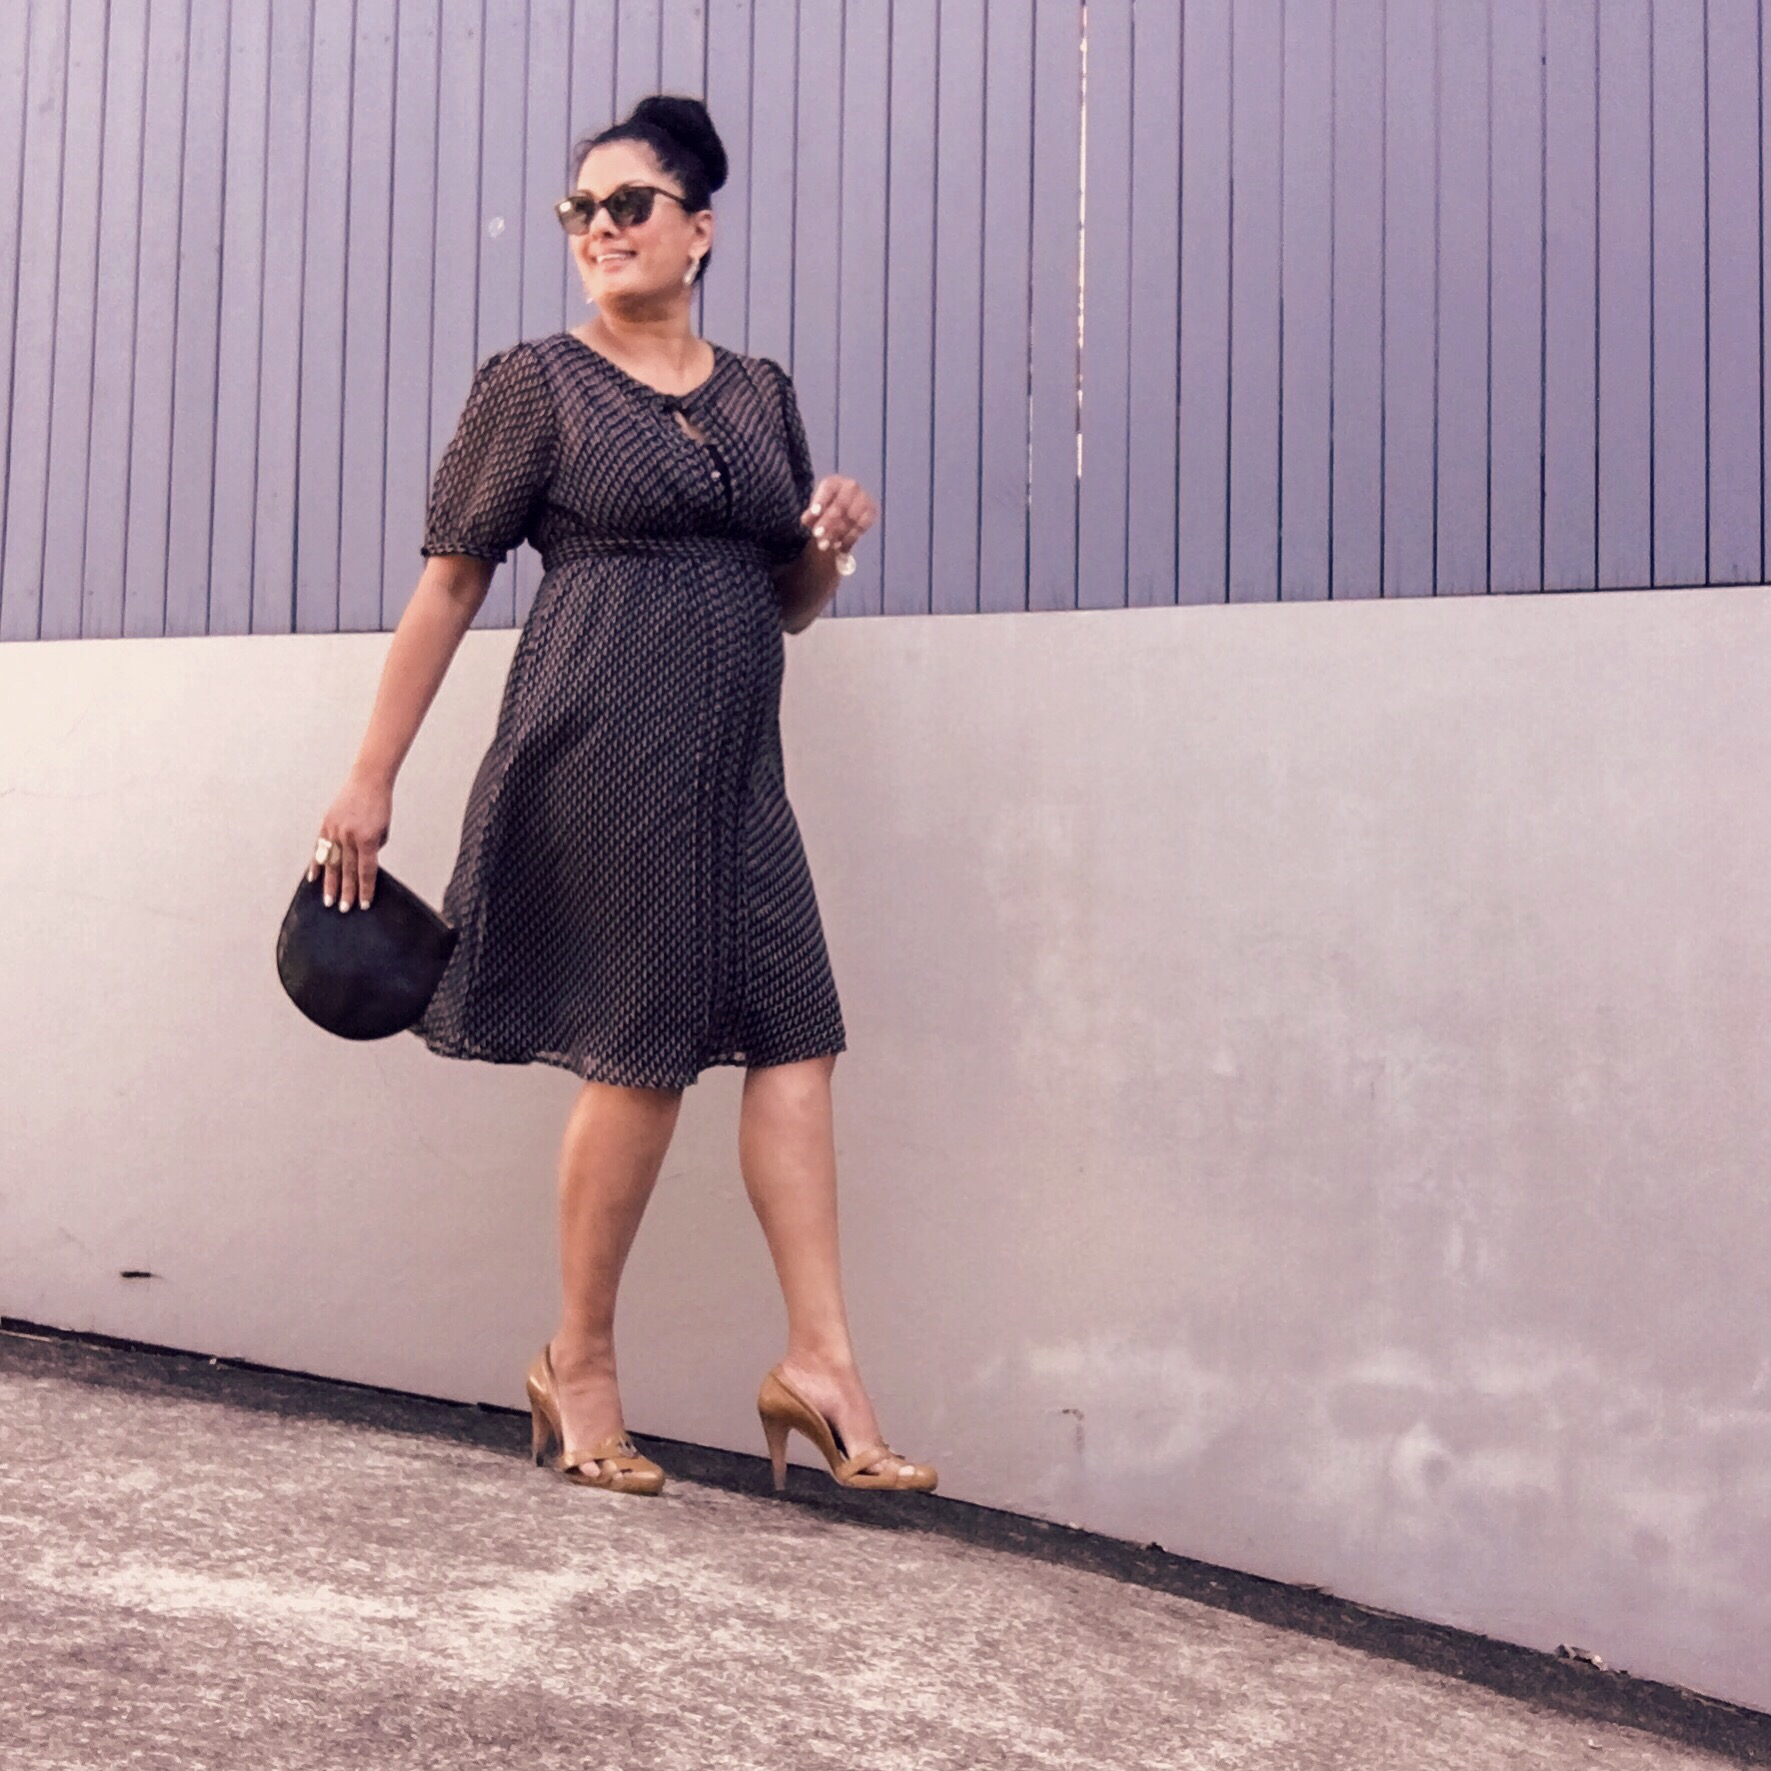 Day one - Friday was a simple classic black and white dressin black and white with black leather clutch and mustard heels.